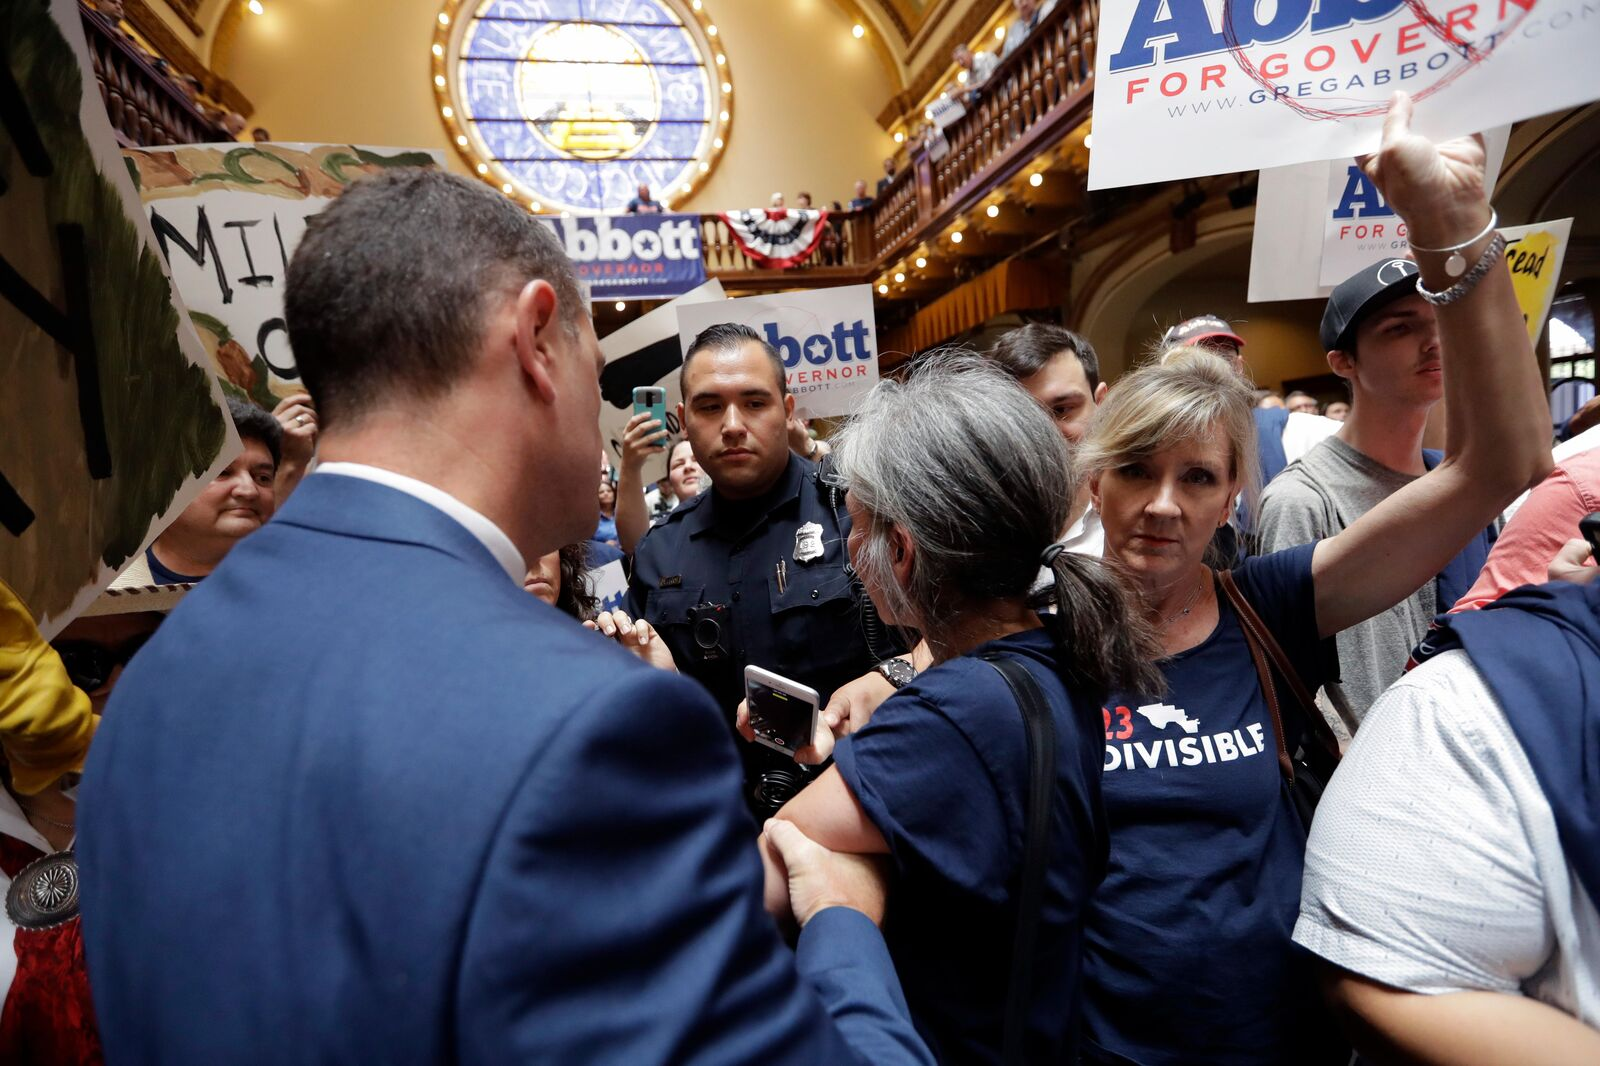 Protesters are led out of an event where Texas Gov. Greg Abbott announced his bid for re-election, Friday, July 14, 2017, in San Antonio. (AP Photo/Eric Gay)